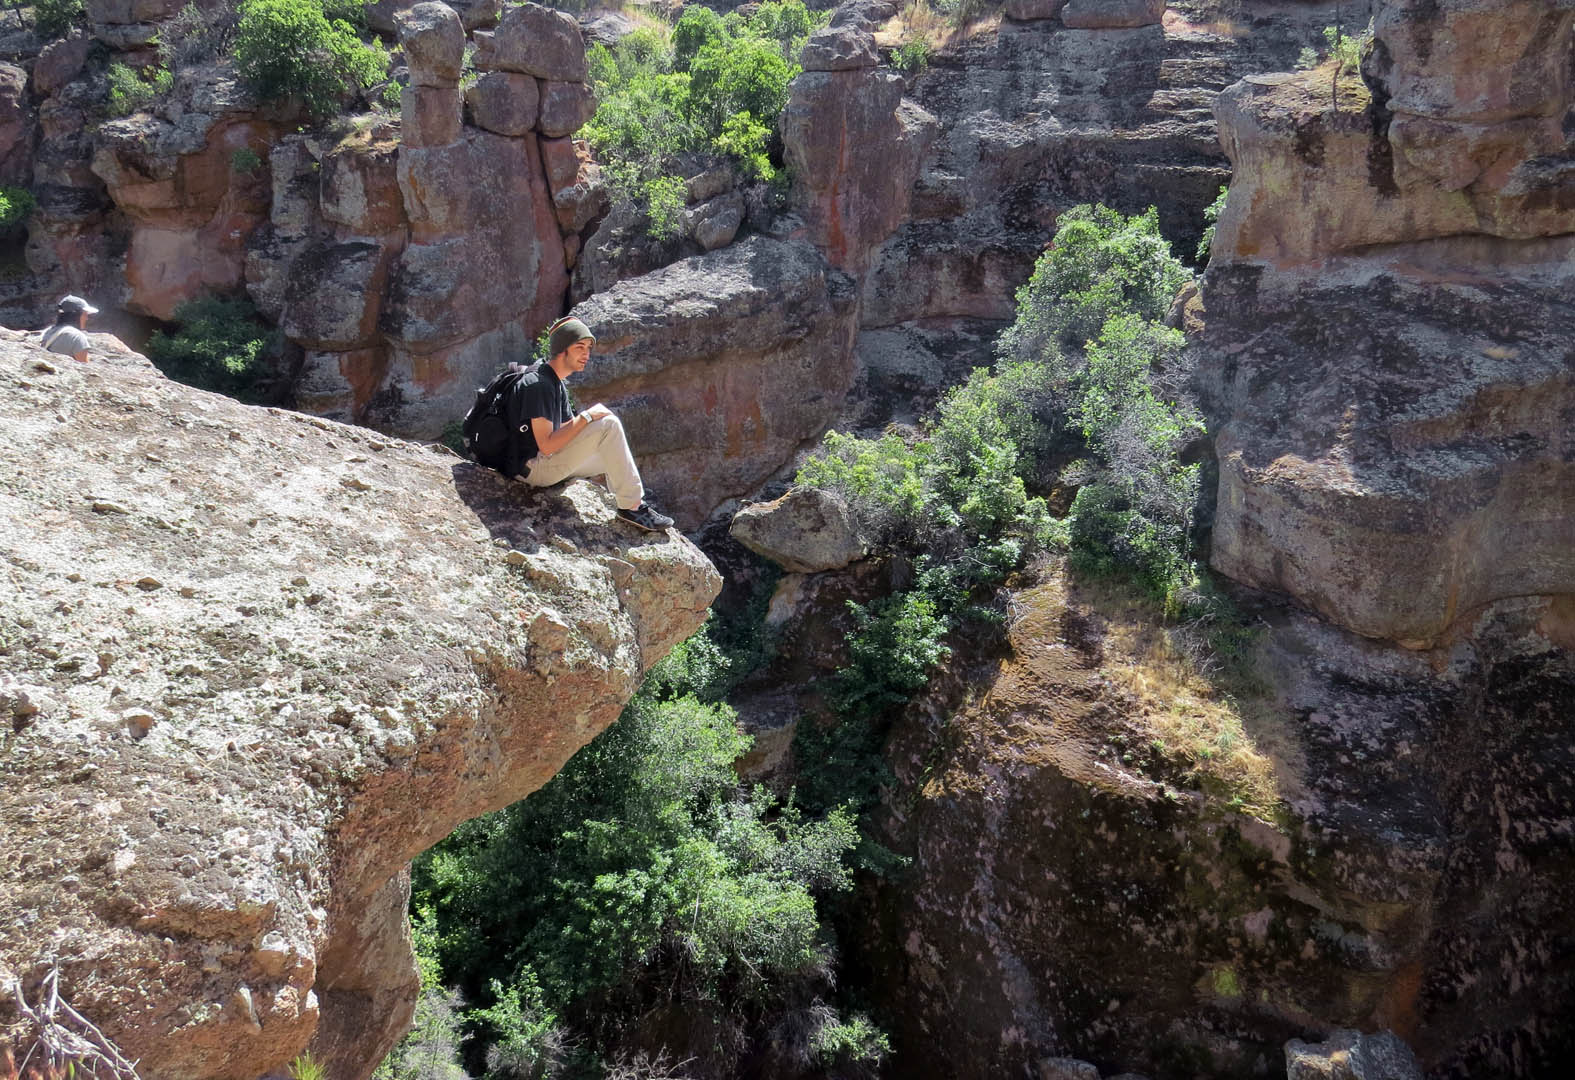 Education: Field trip to the Pinnacles teaches LO students geology first hand